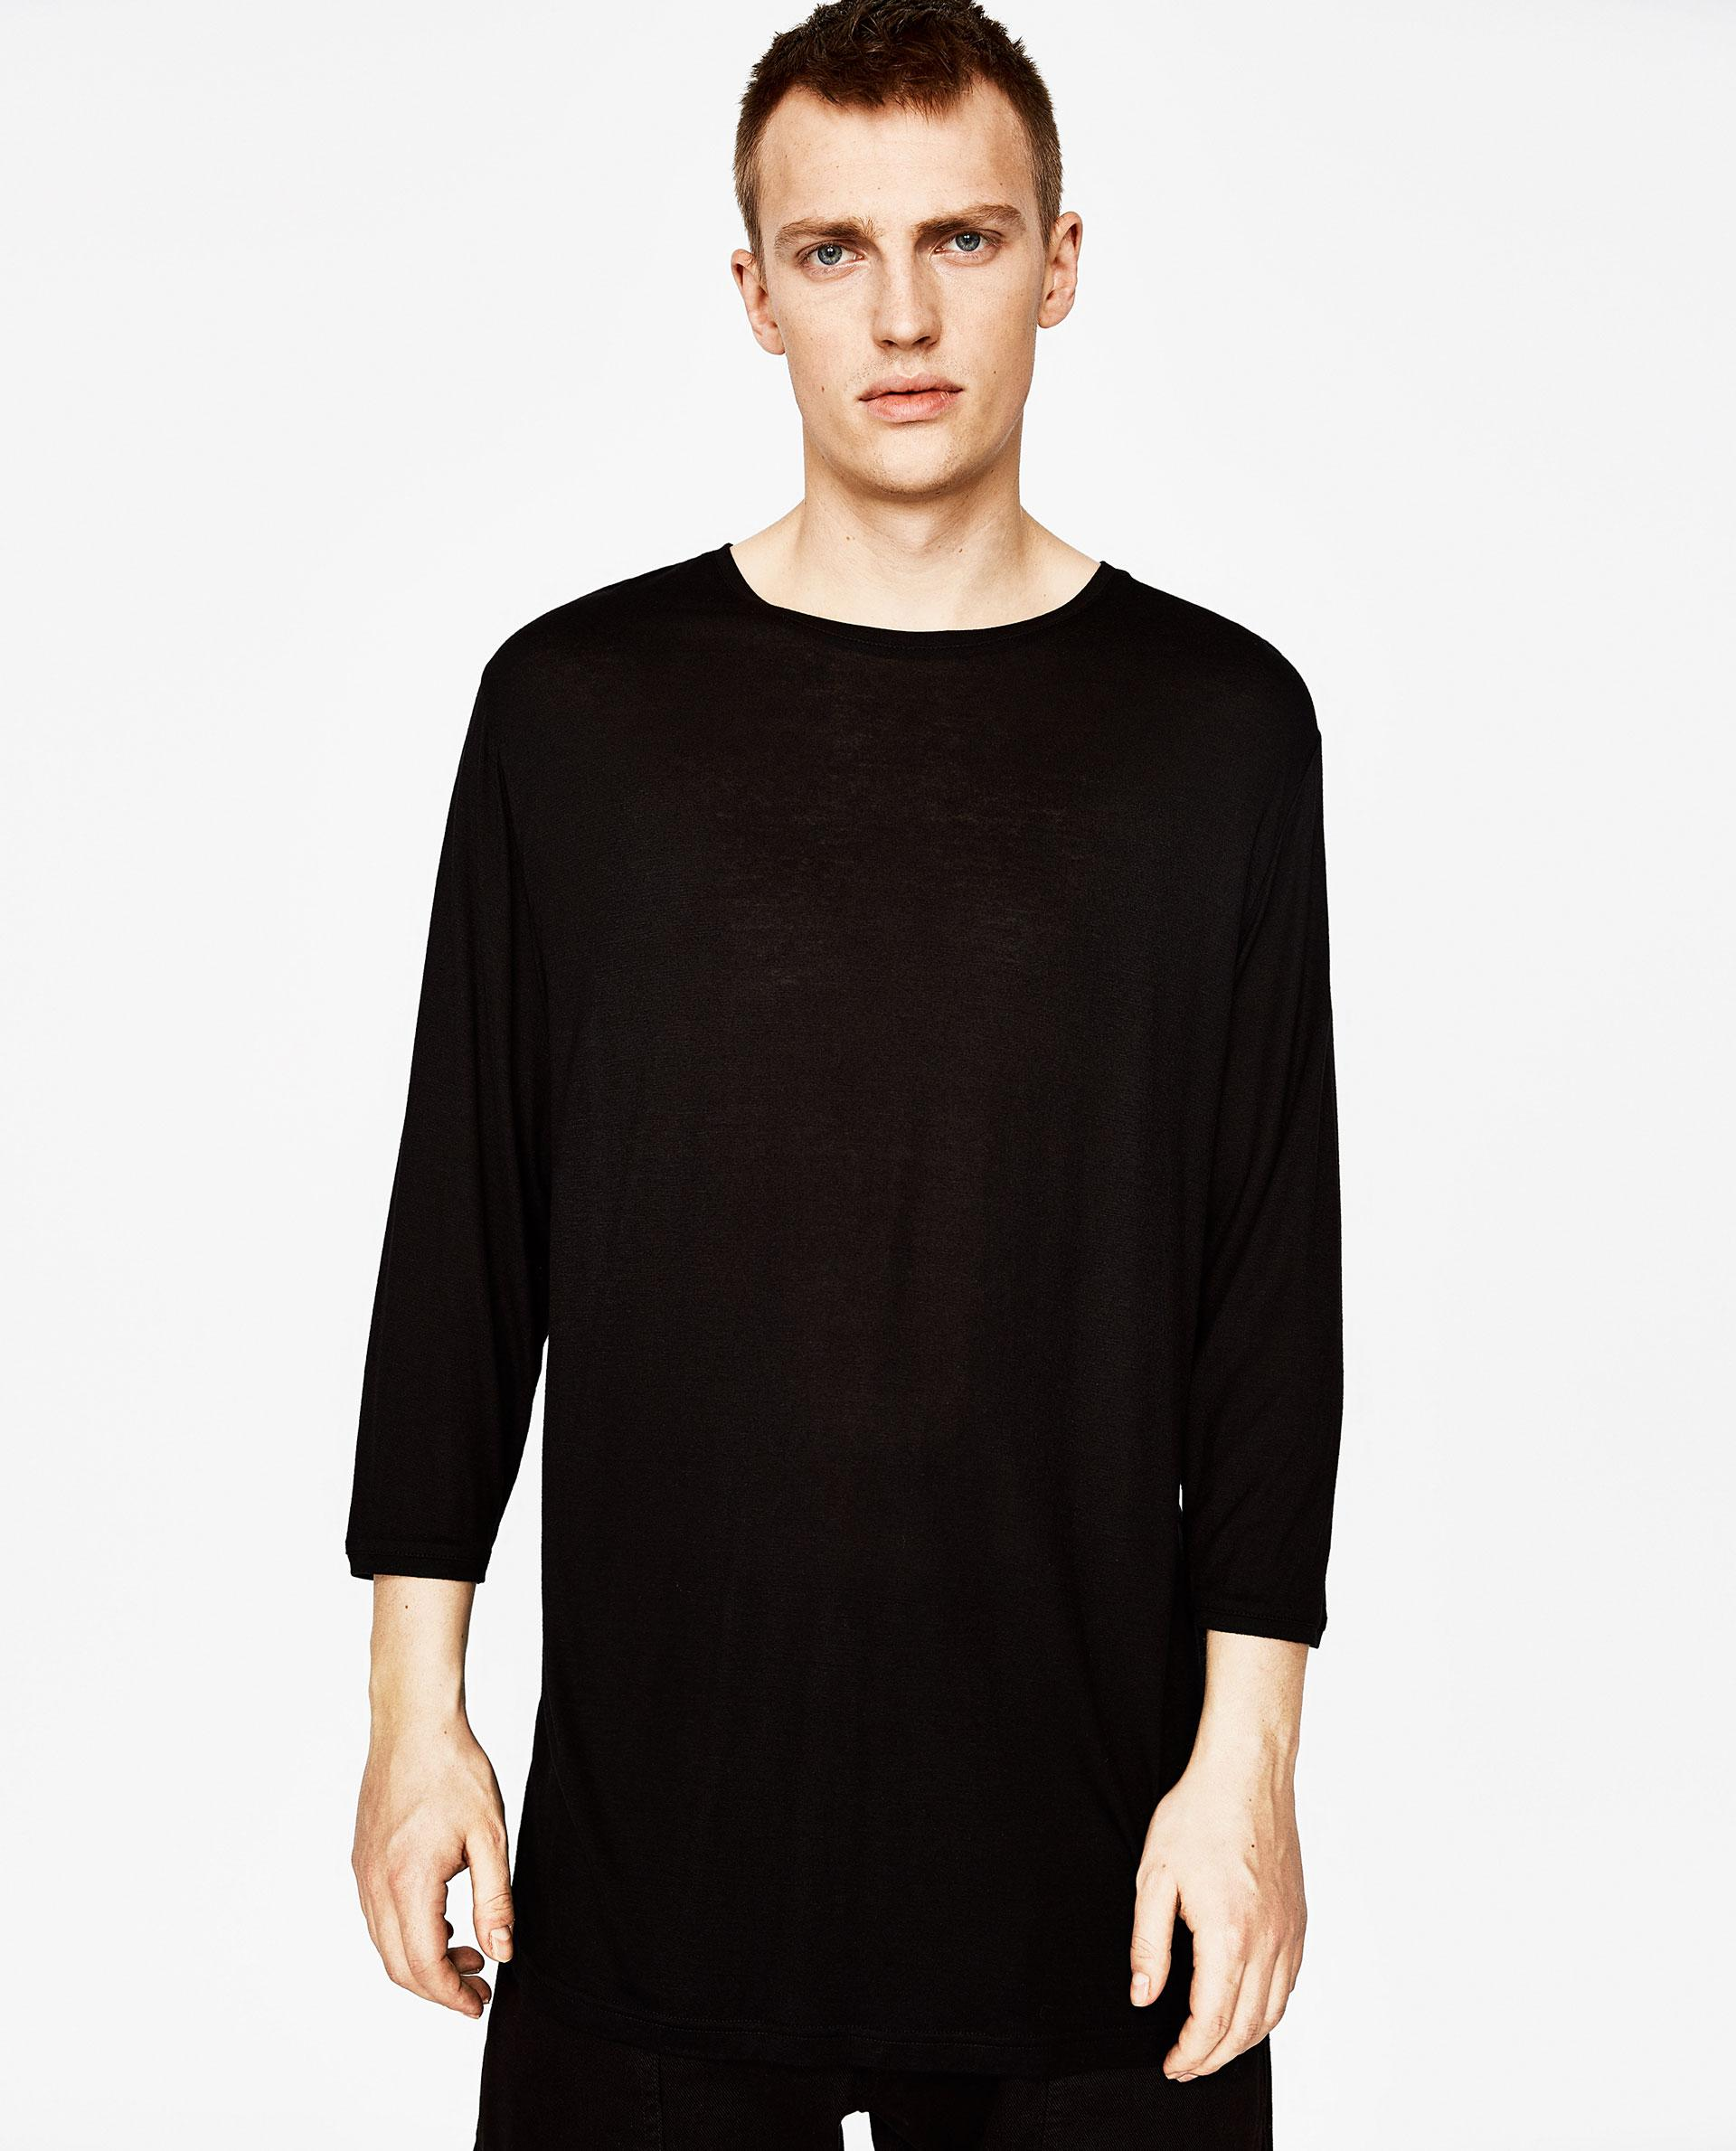 Zara T Shirt With Three Quarter Length Sleeves In Black